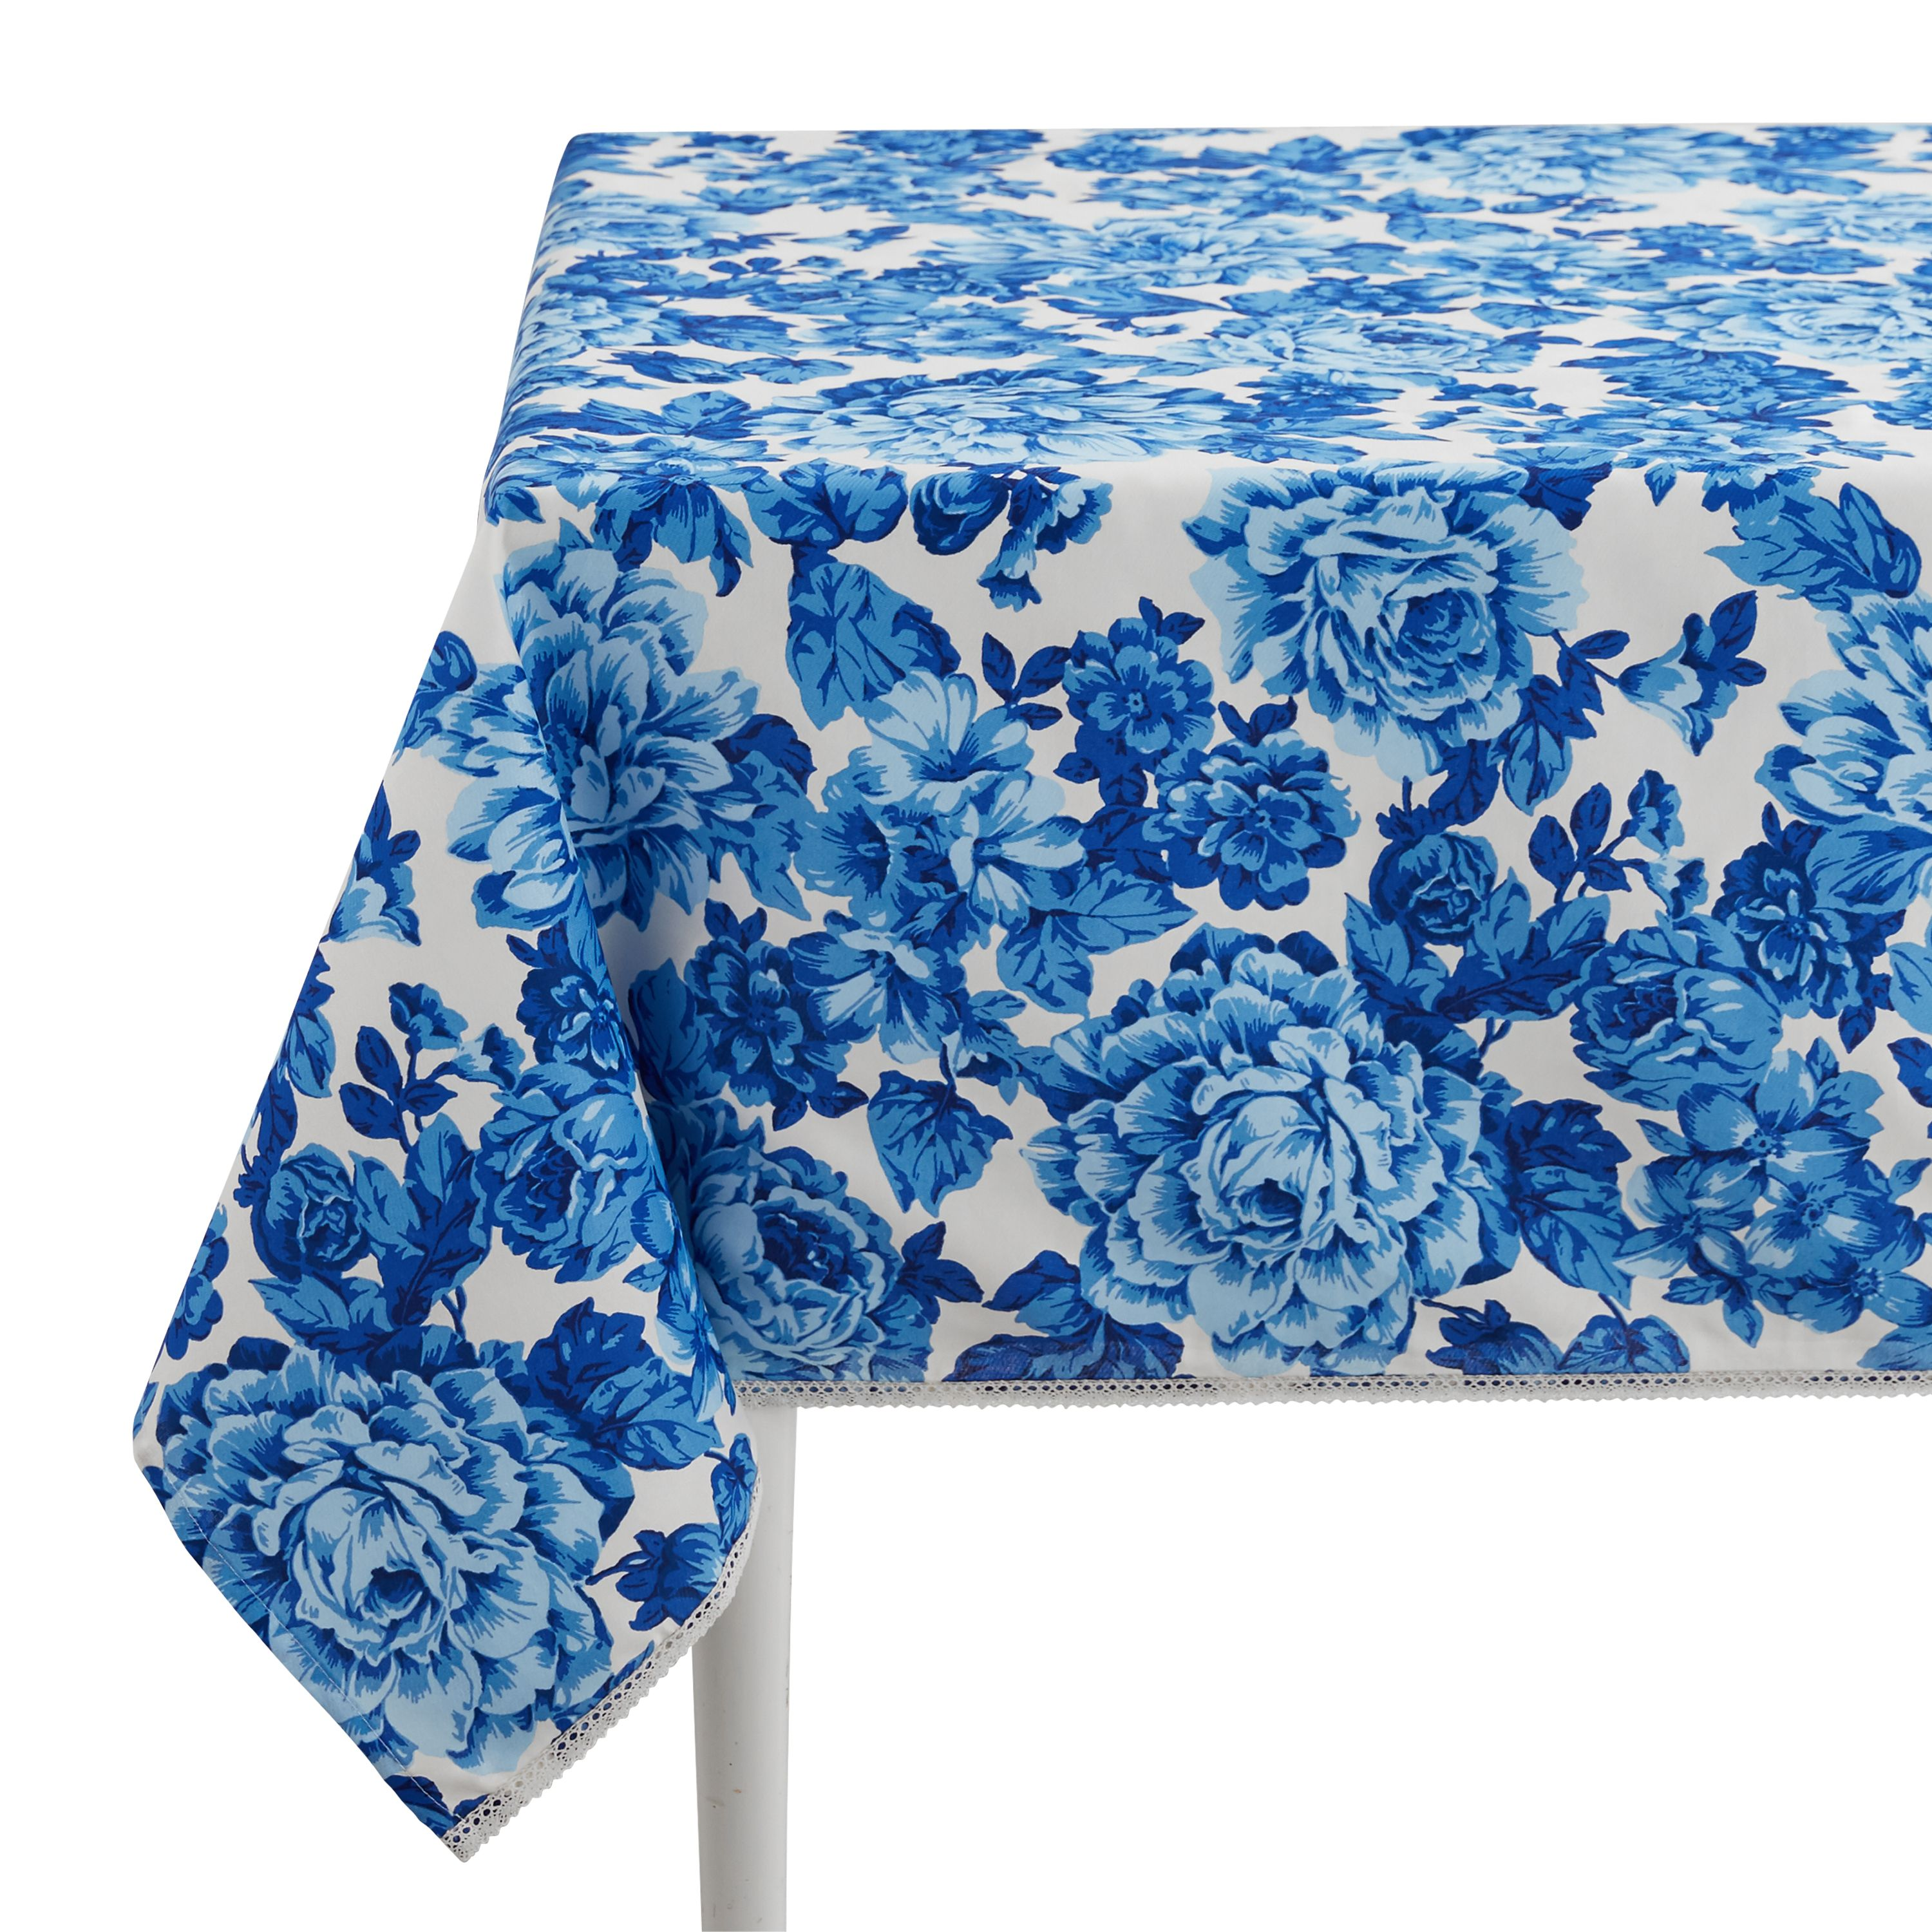 The Pioneer Woman Heritage Floral Fabric Tablecloth 60 W X 84 L Available In Multiple Sizes Walmart Com Floral Tablecloth Tablecloth Fabric Pioneer Woman